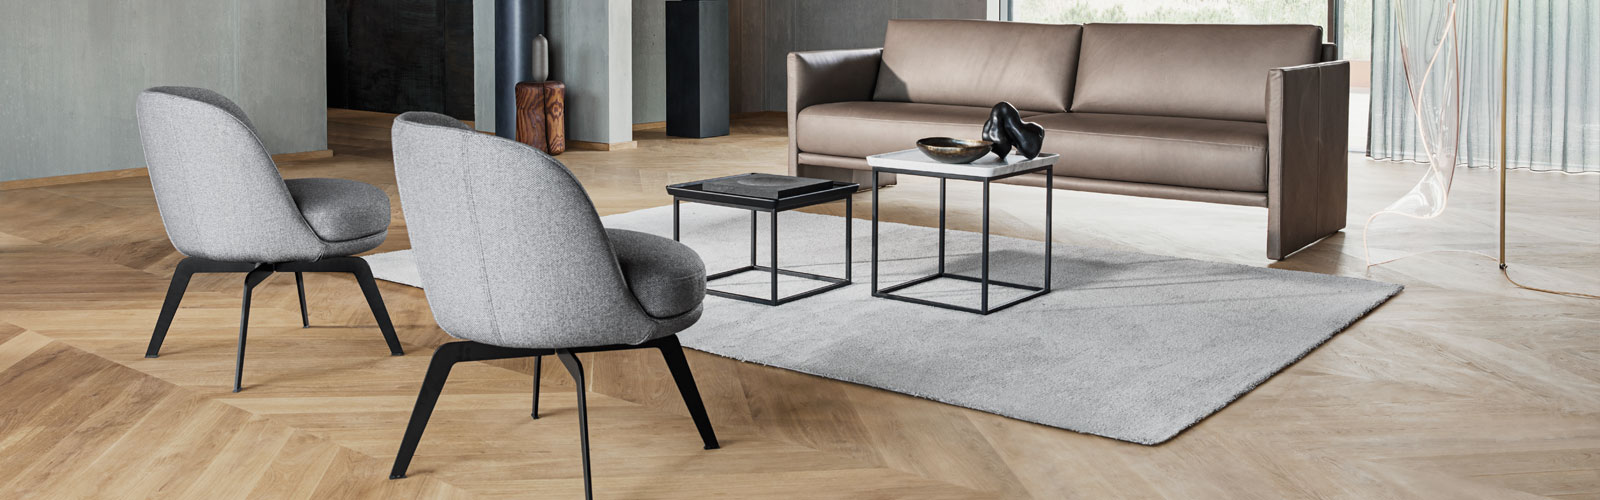 Rolf Benz 562 Chairs